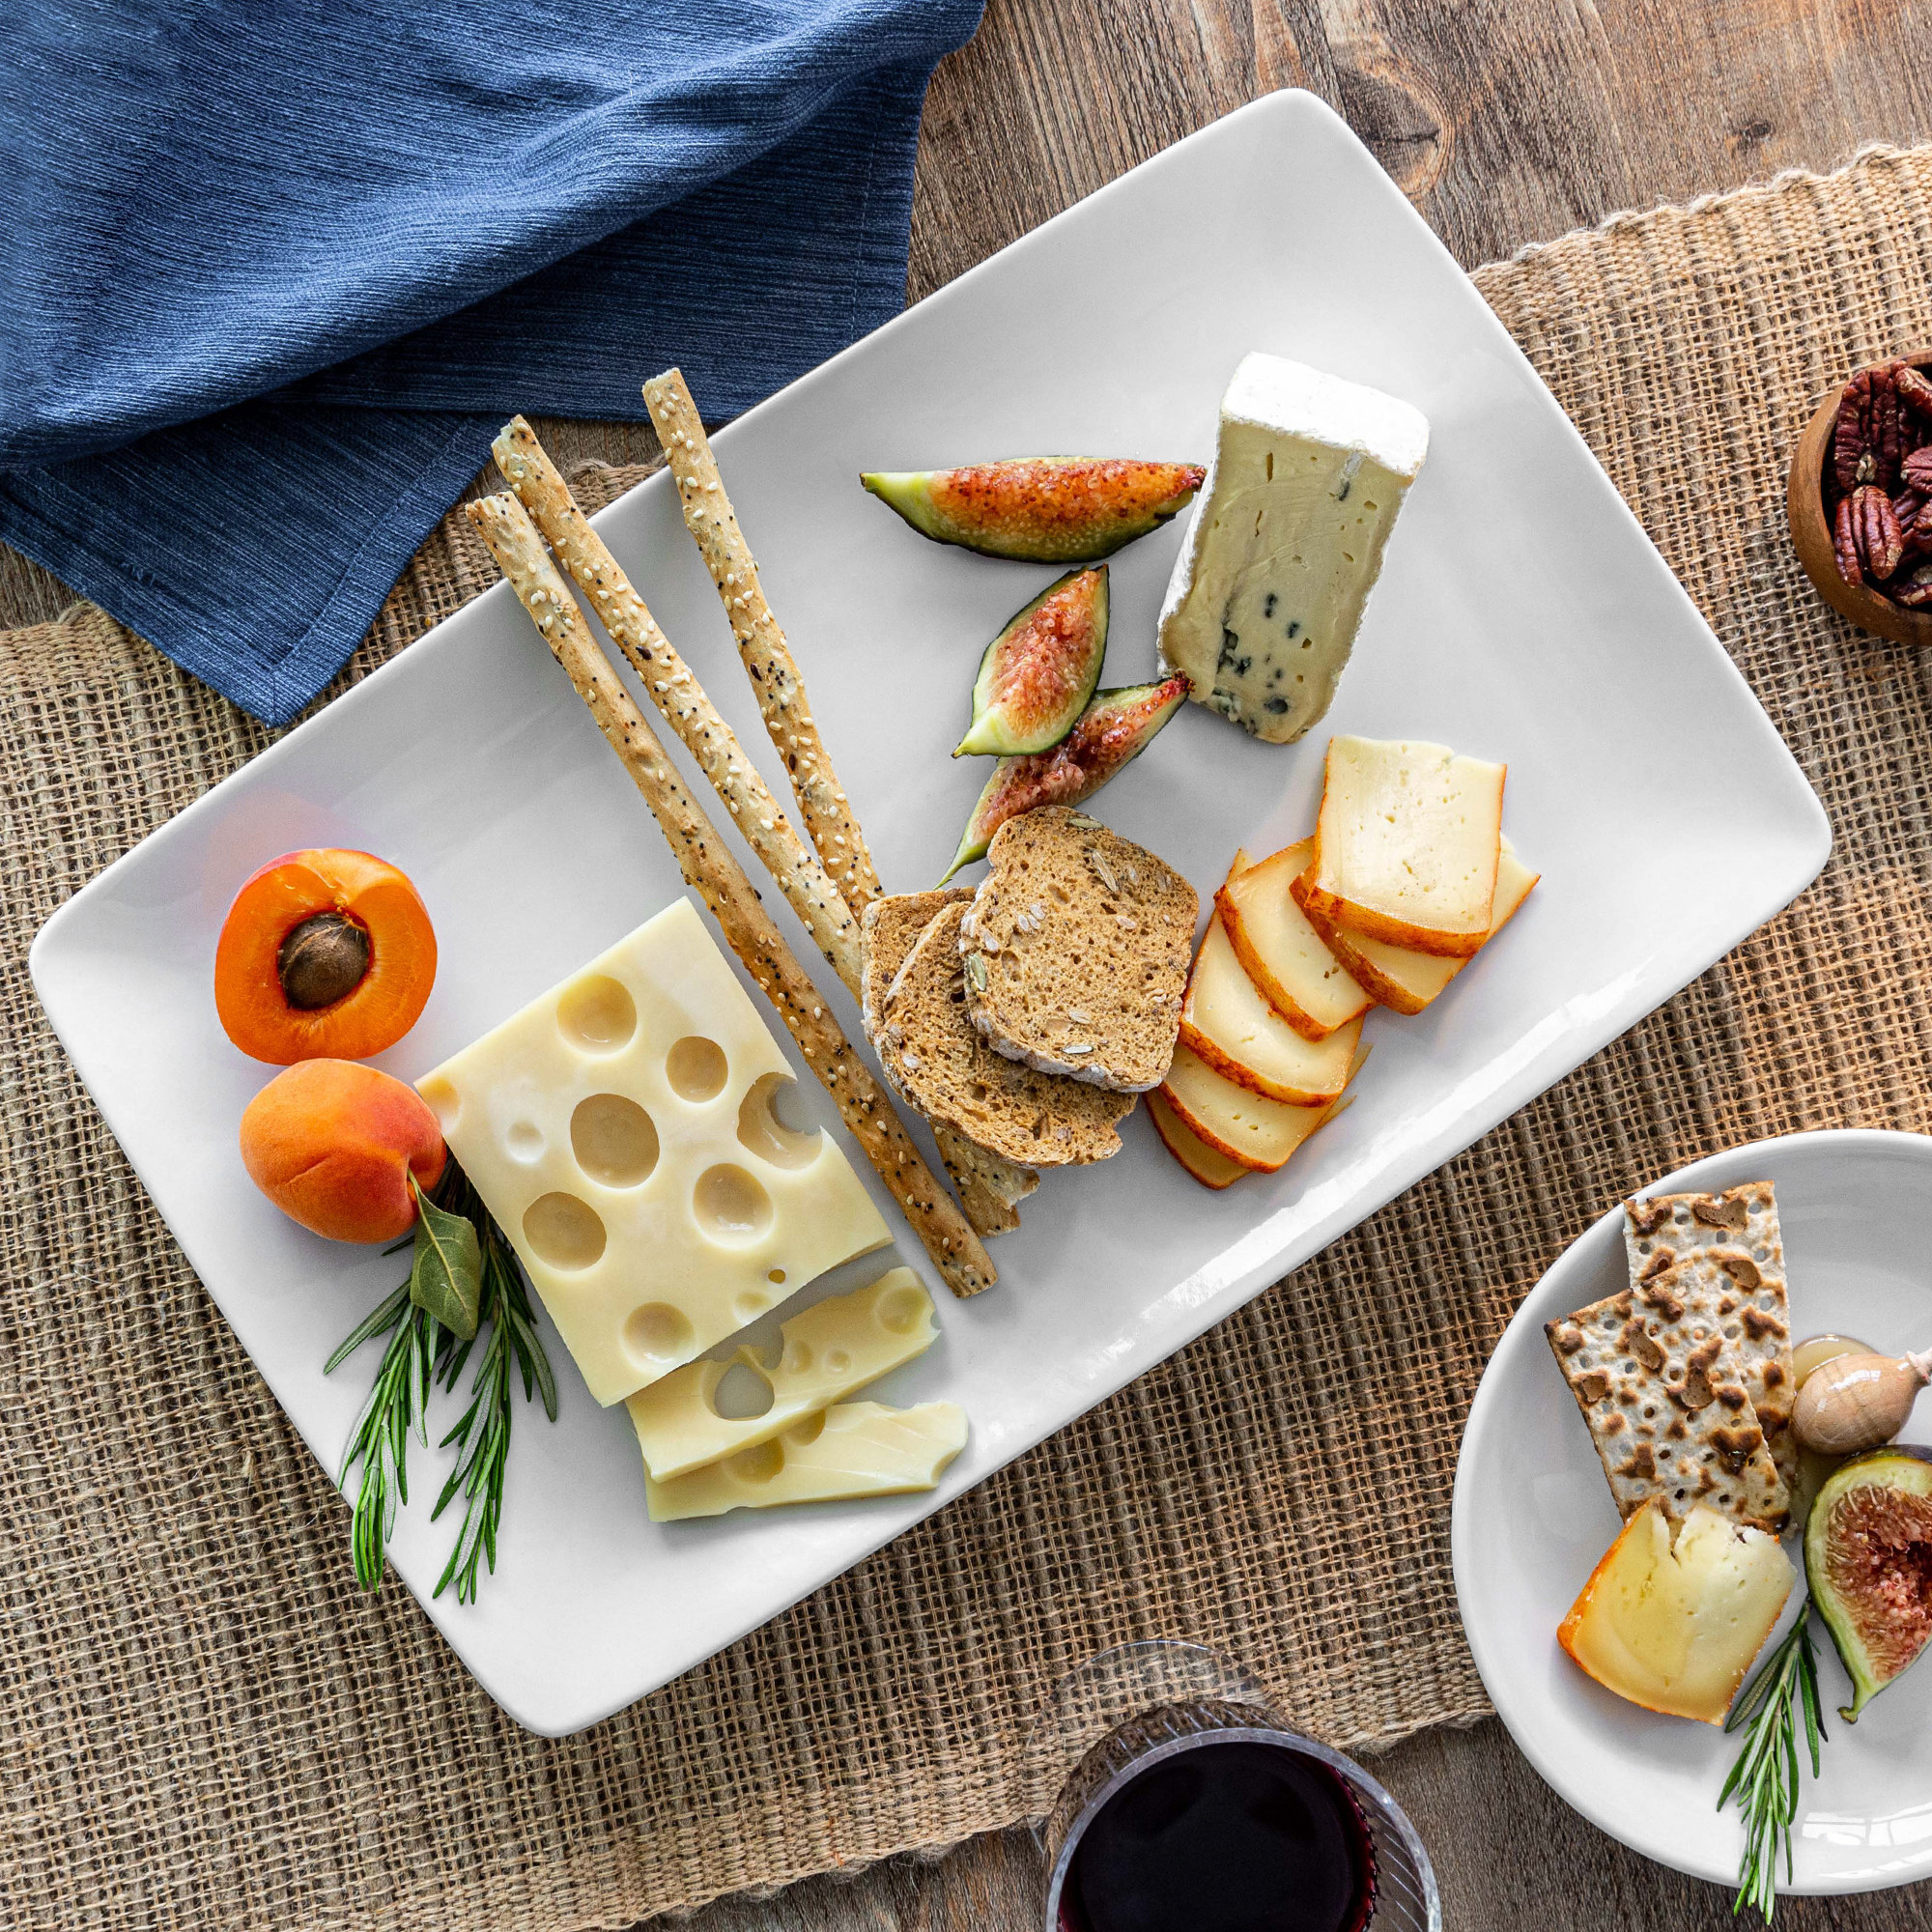 porcelain serve platter with cheese and snacks on it